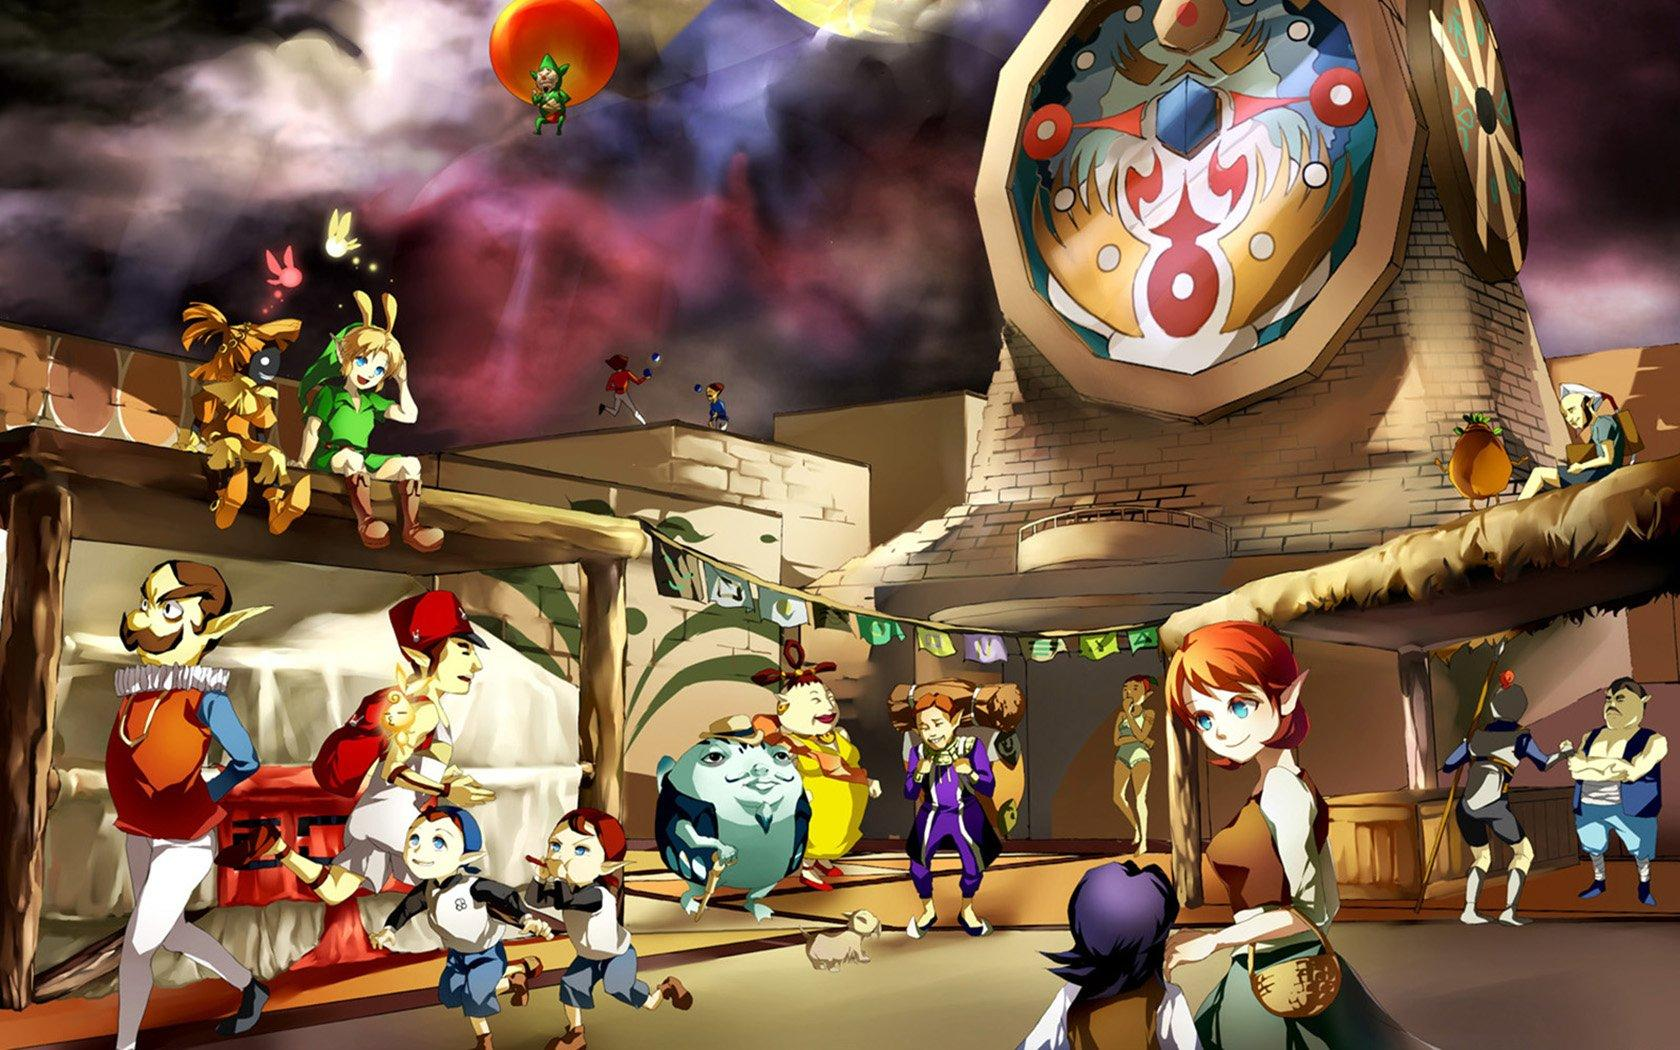 Video games Link The Legend of Zelda: Majoras Mask clocktowers